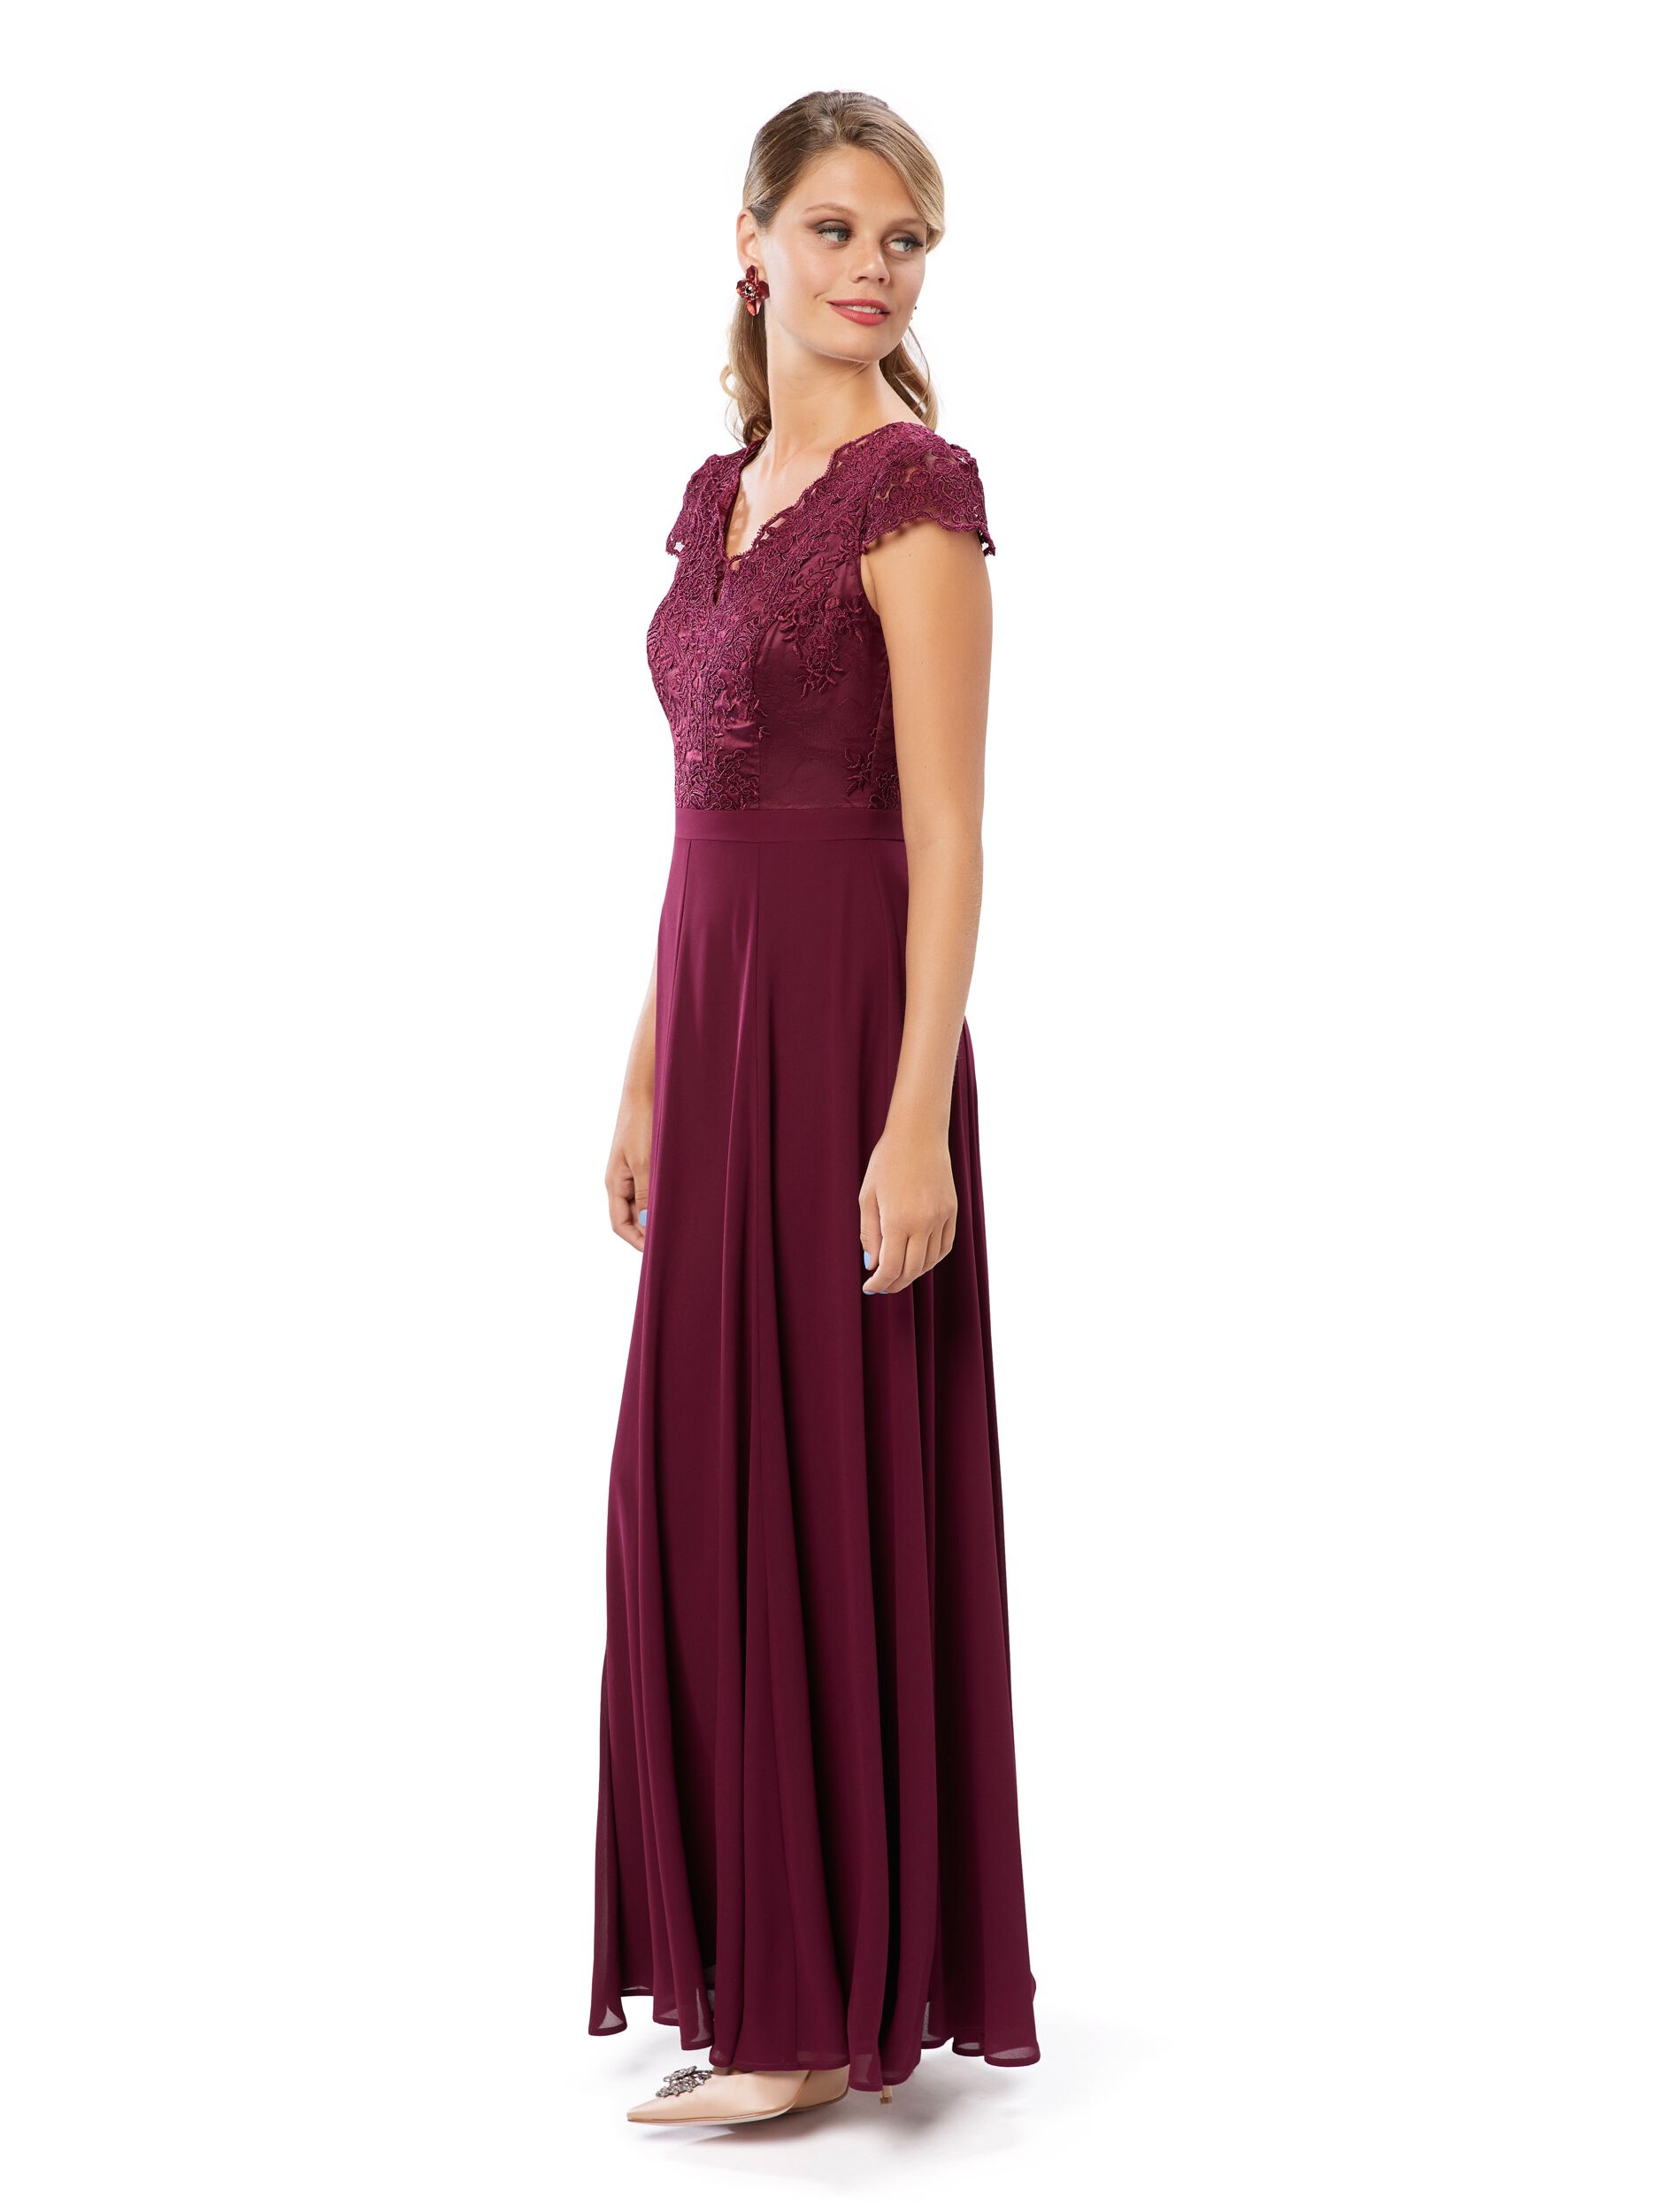 Eternity Maxi Dress